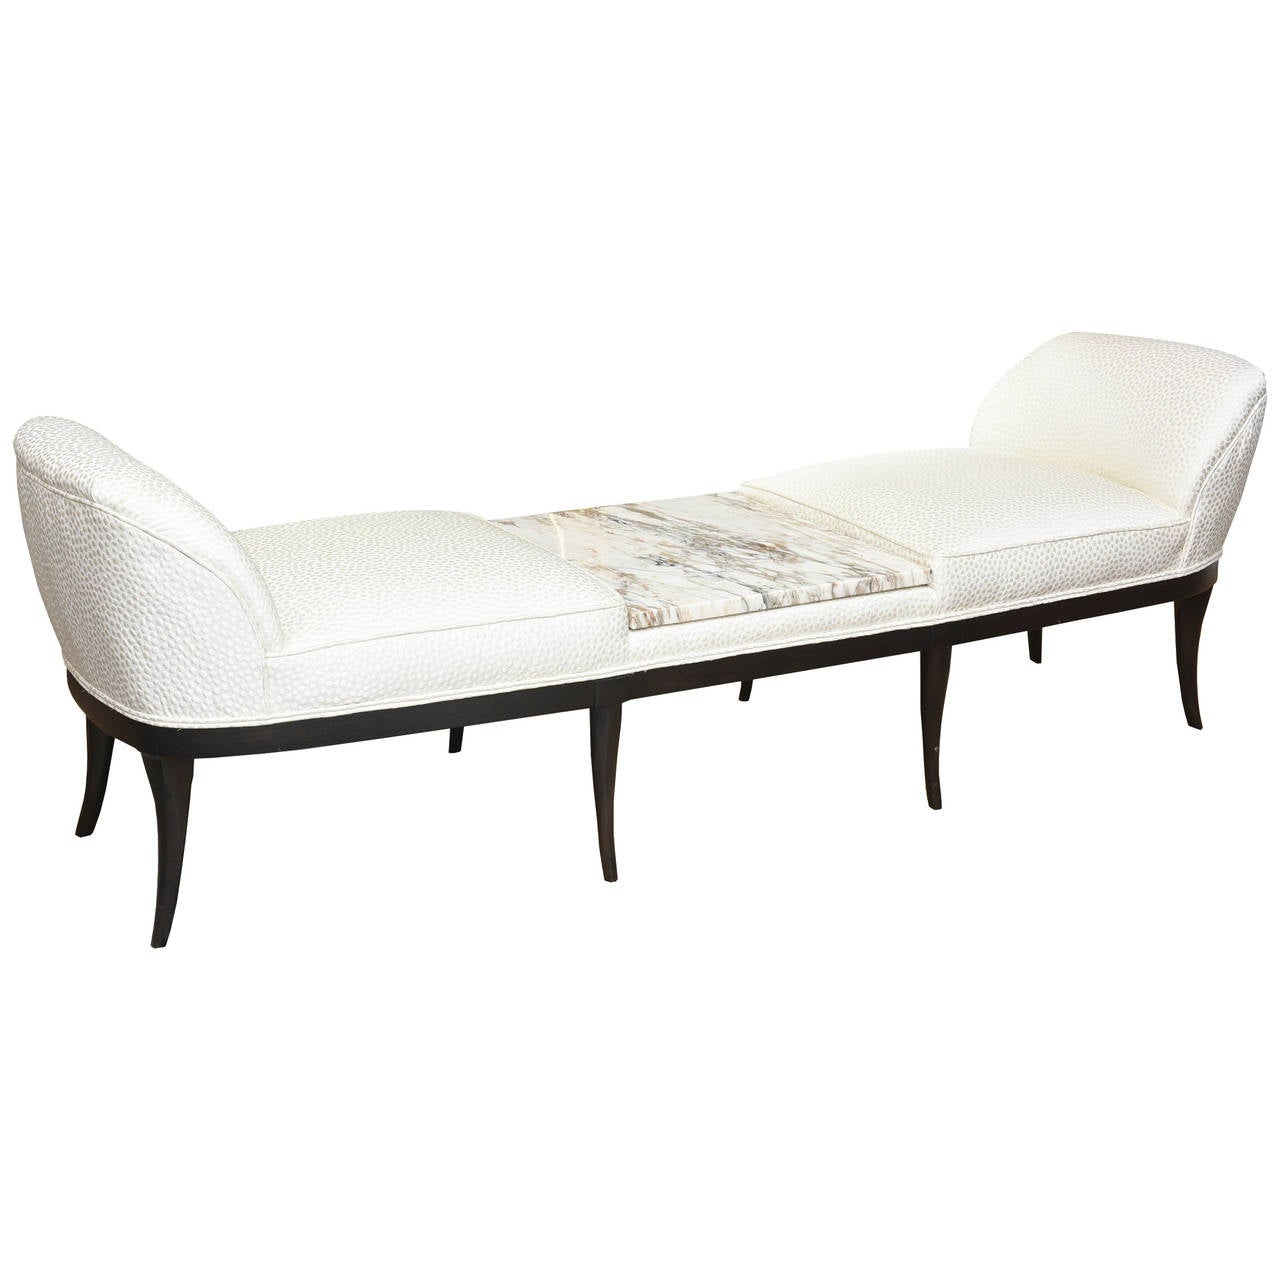 Ebonized Wood Italian Marble And Upholstered Bench Settee Chaise Or Recamier For Sale At 1stdibs